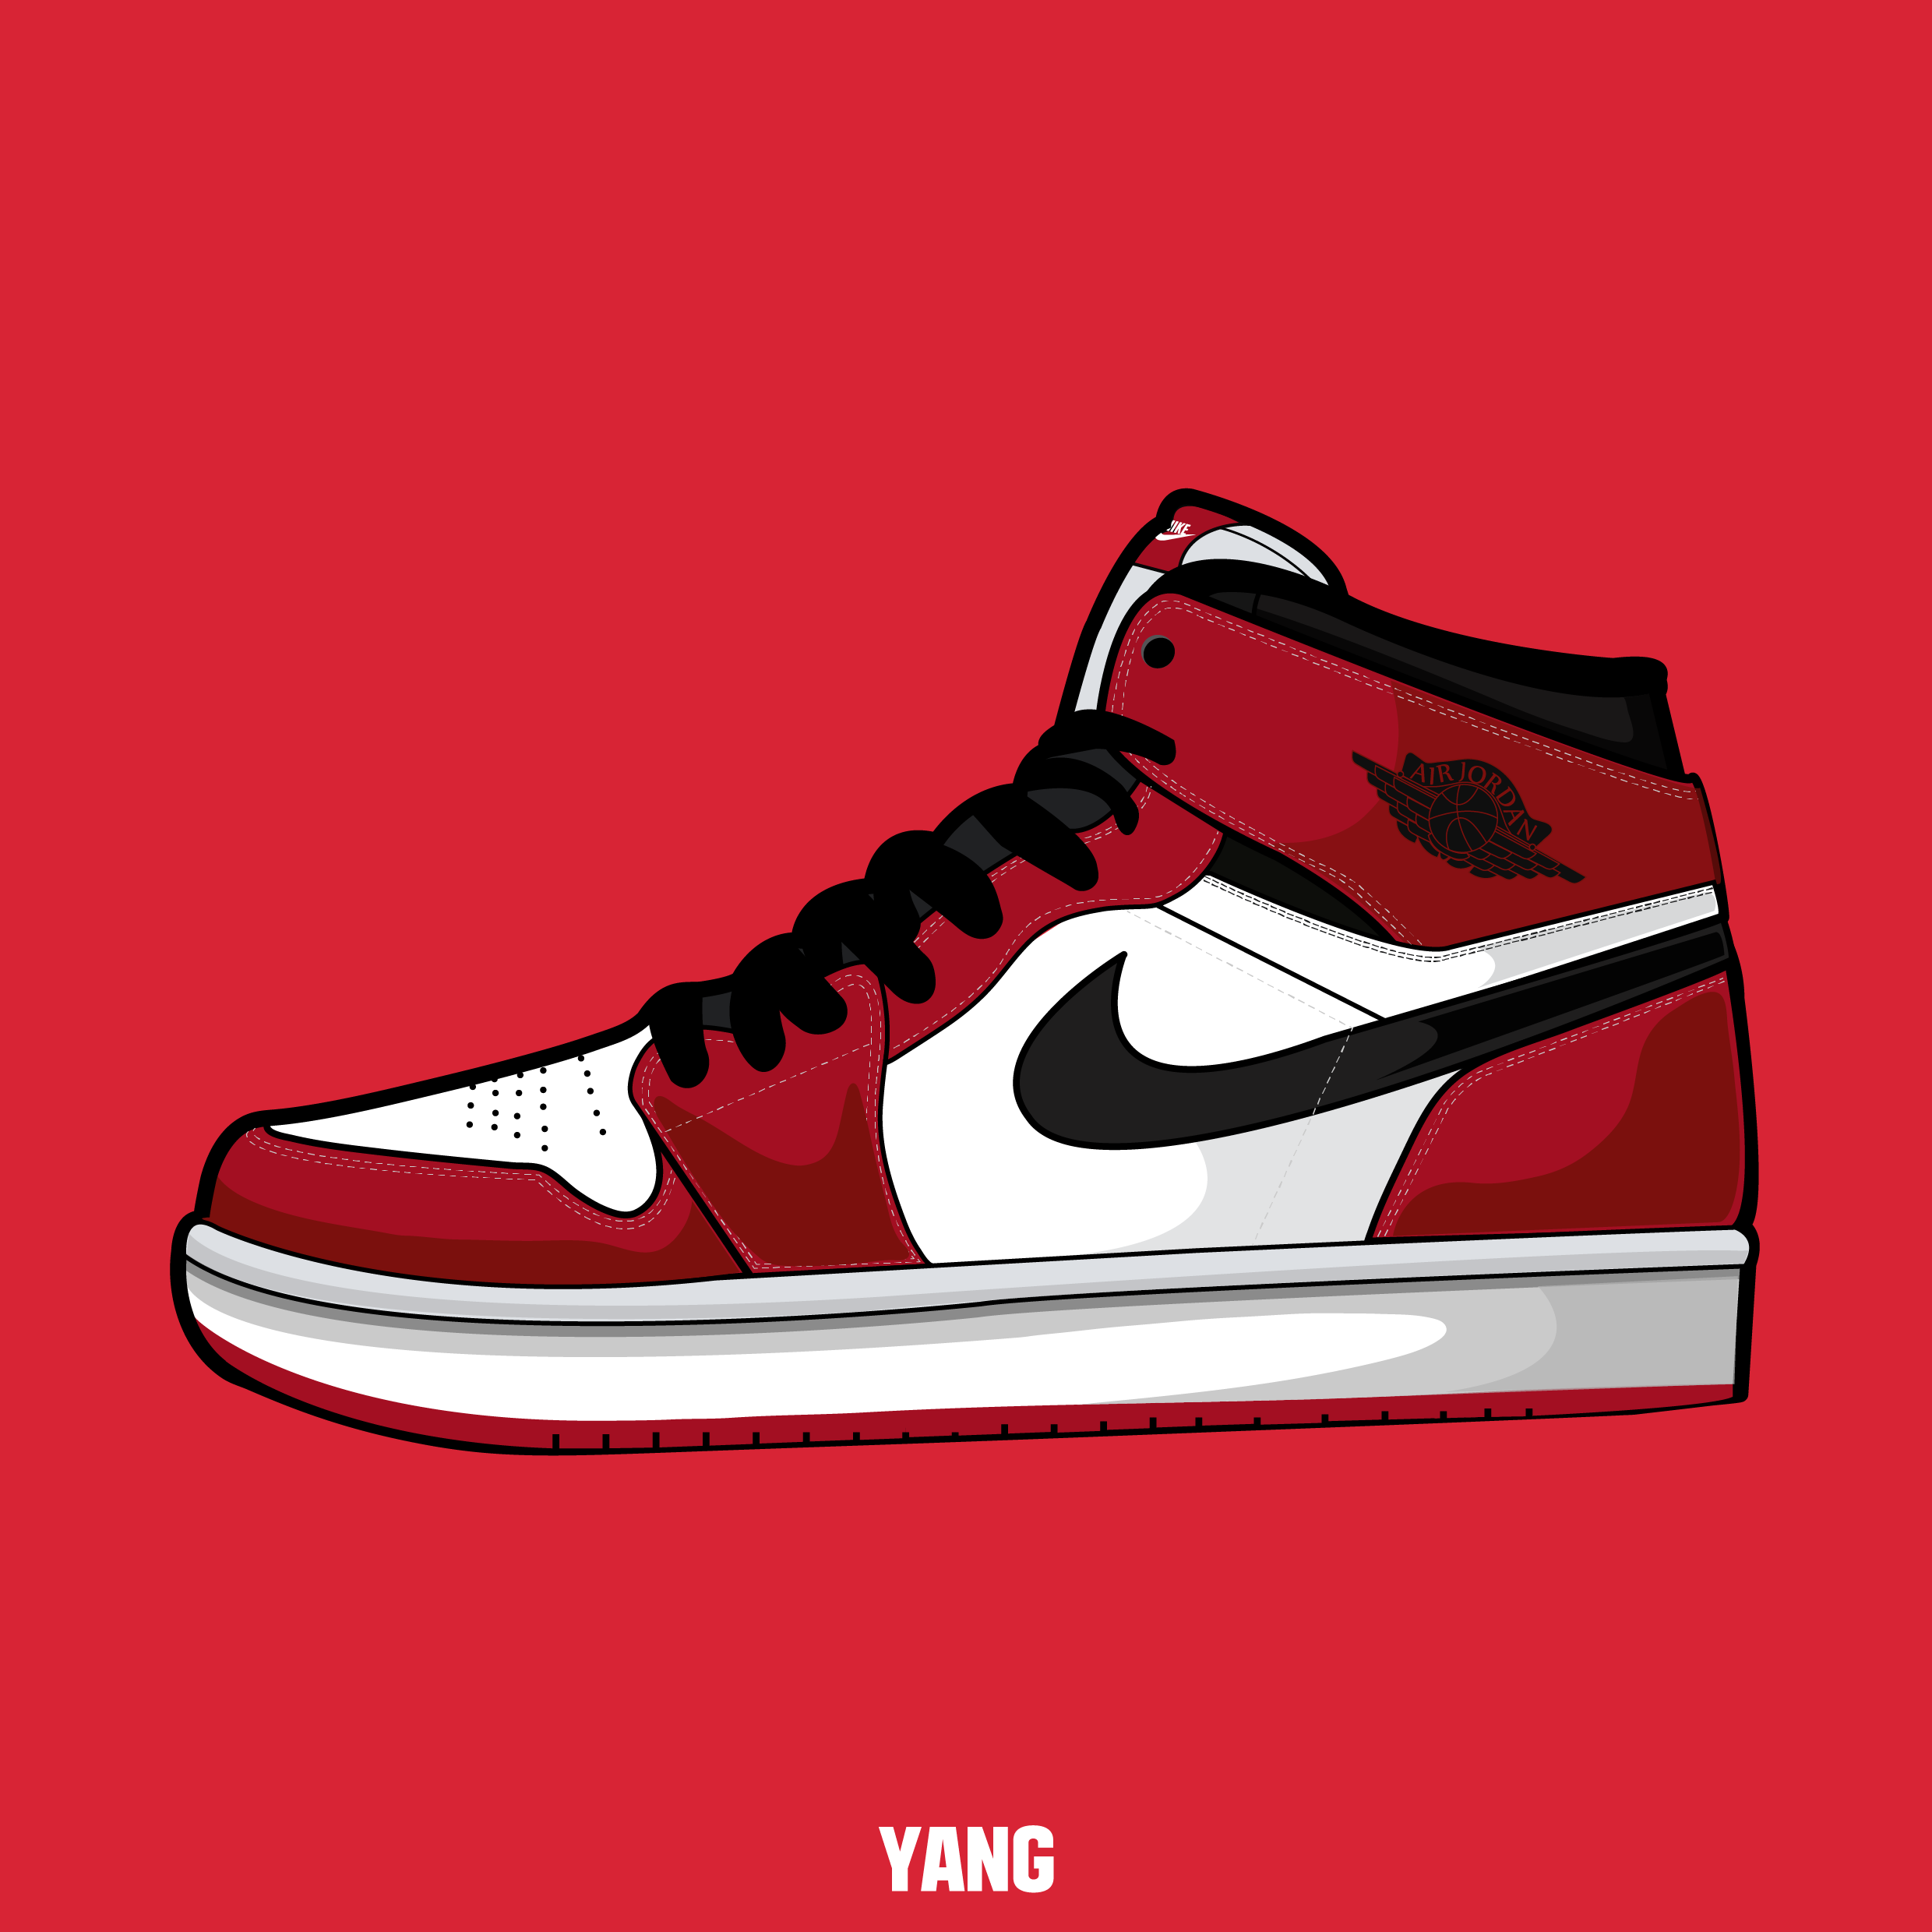 Drawn shoe jordan 1 Sneakers drawing jordan graphic